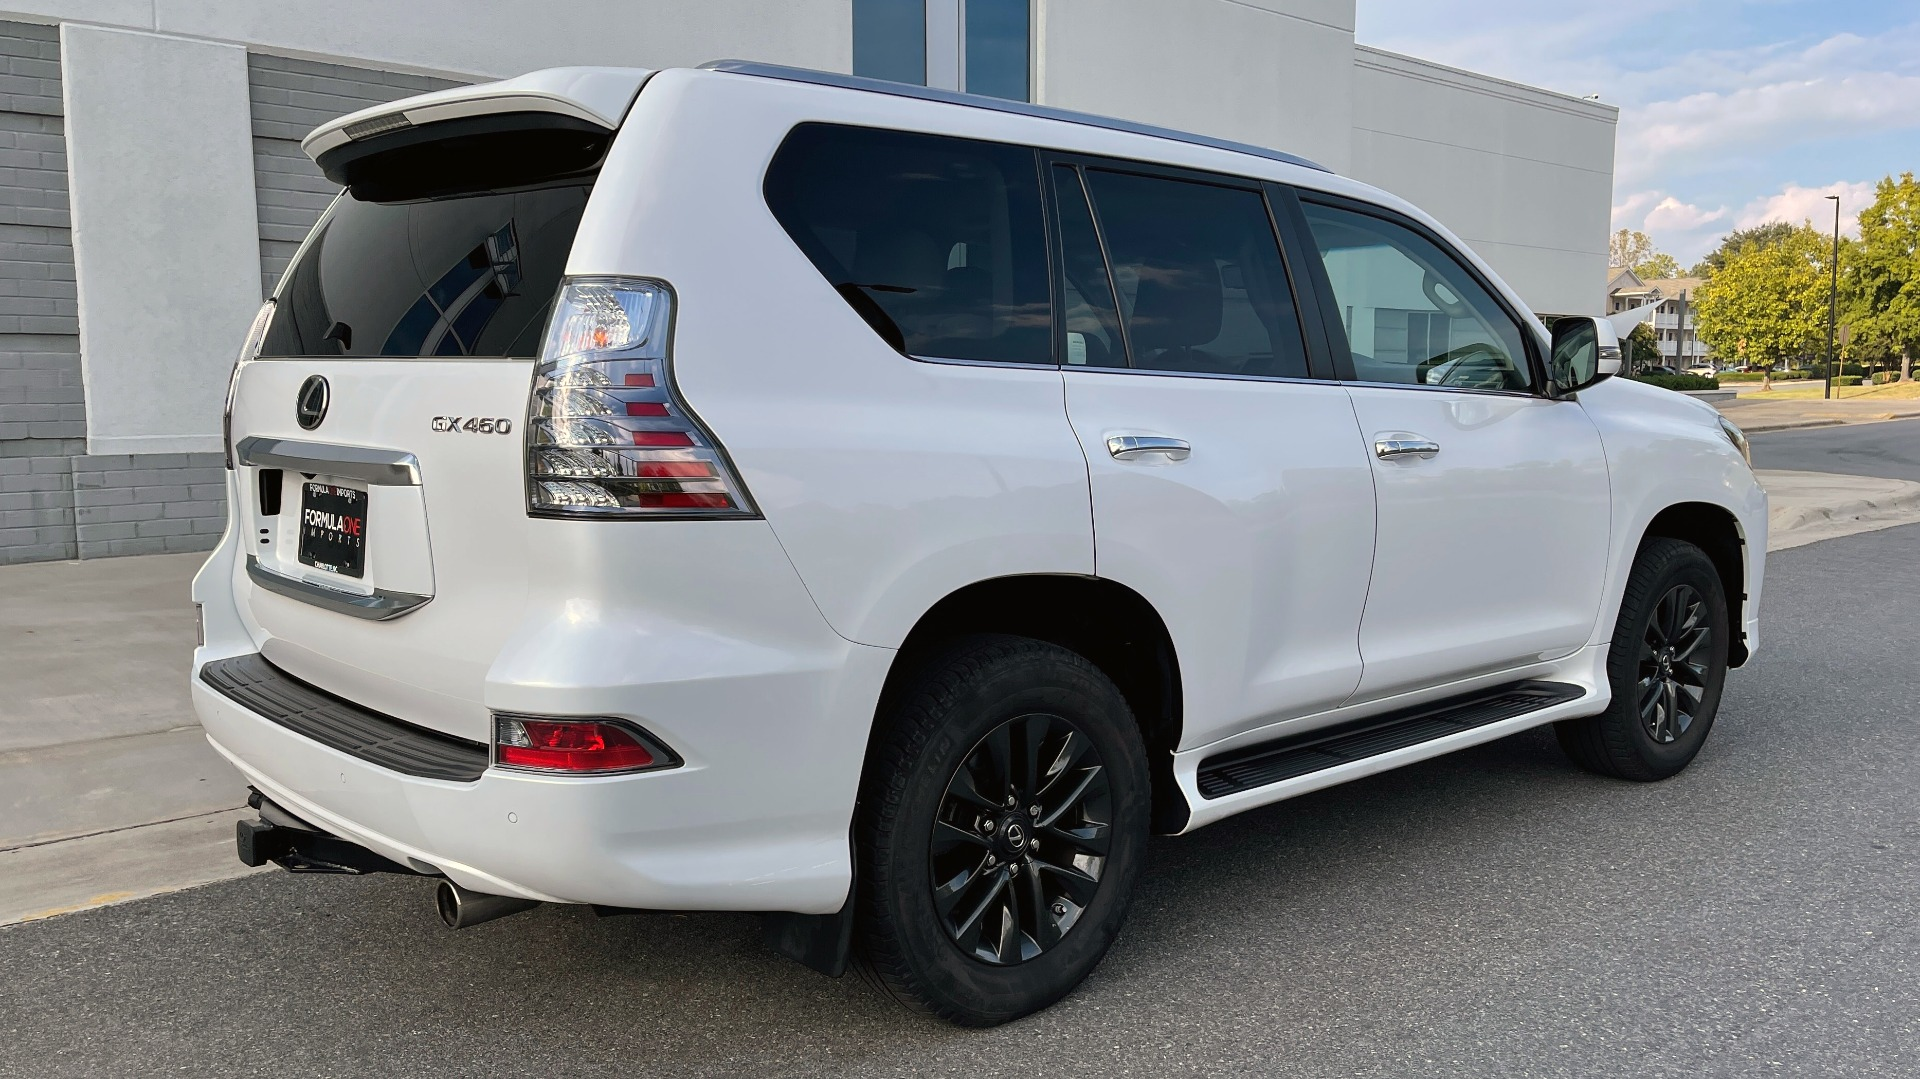 Used 2020 Lexus GX 460 PREMIUM / AWD / NAV / SUNROOF / 3-ROW / REARVIEW for sale $54,495 at Formula Imports in Charlotte NC 28227 2